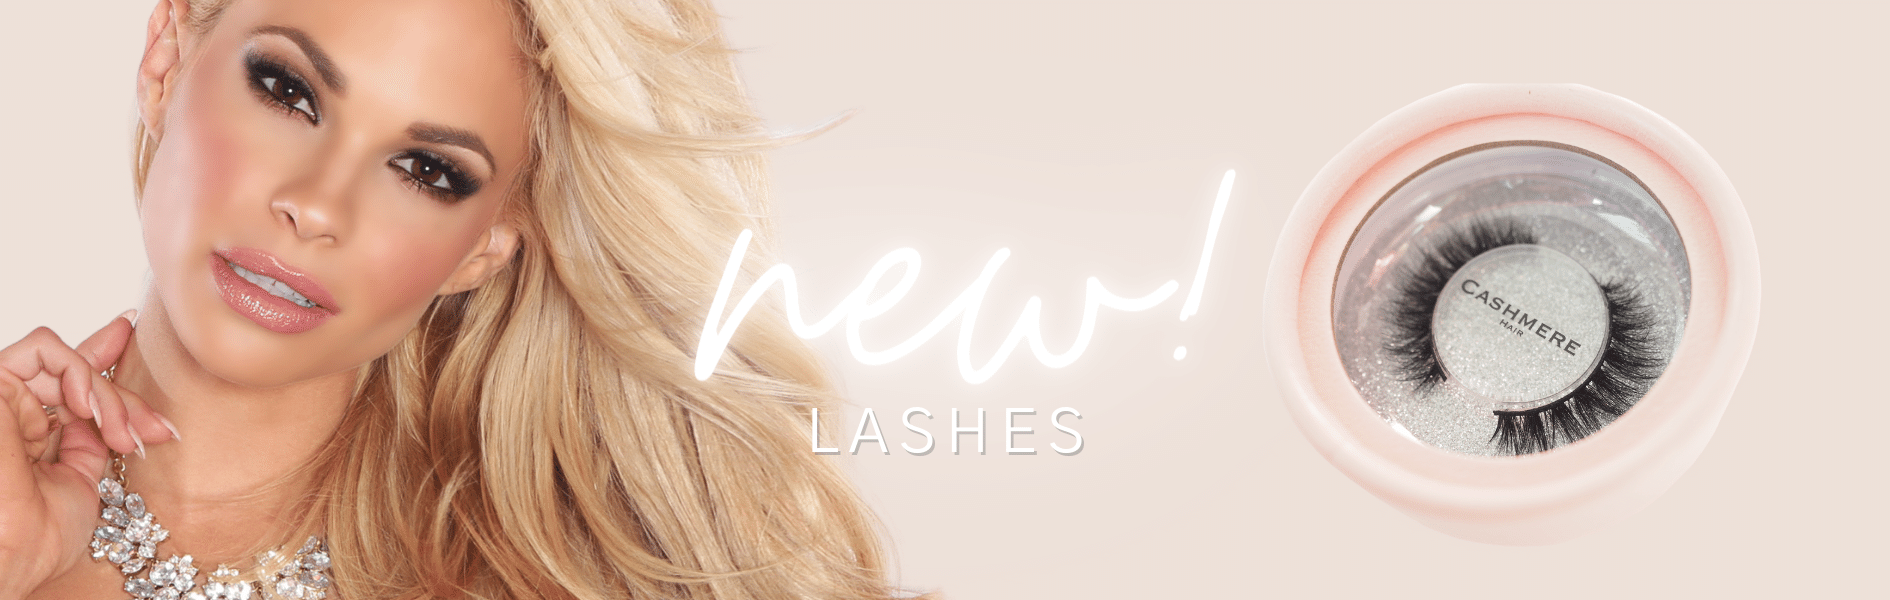 lash-store-banner-cashmere-hair-.png